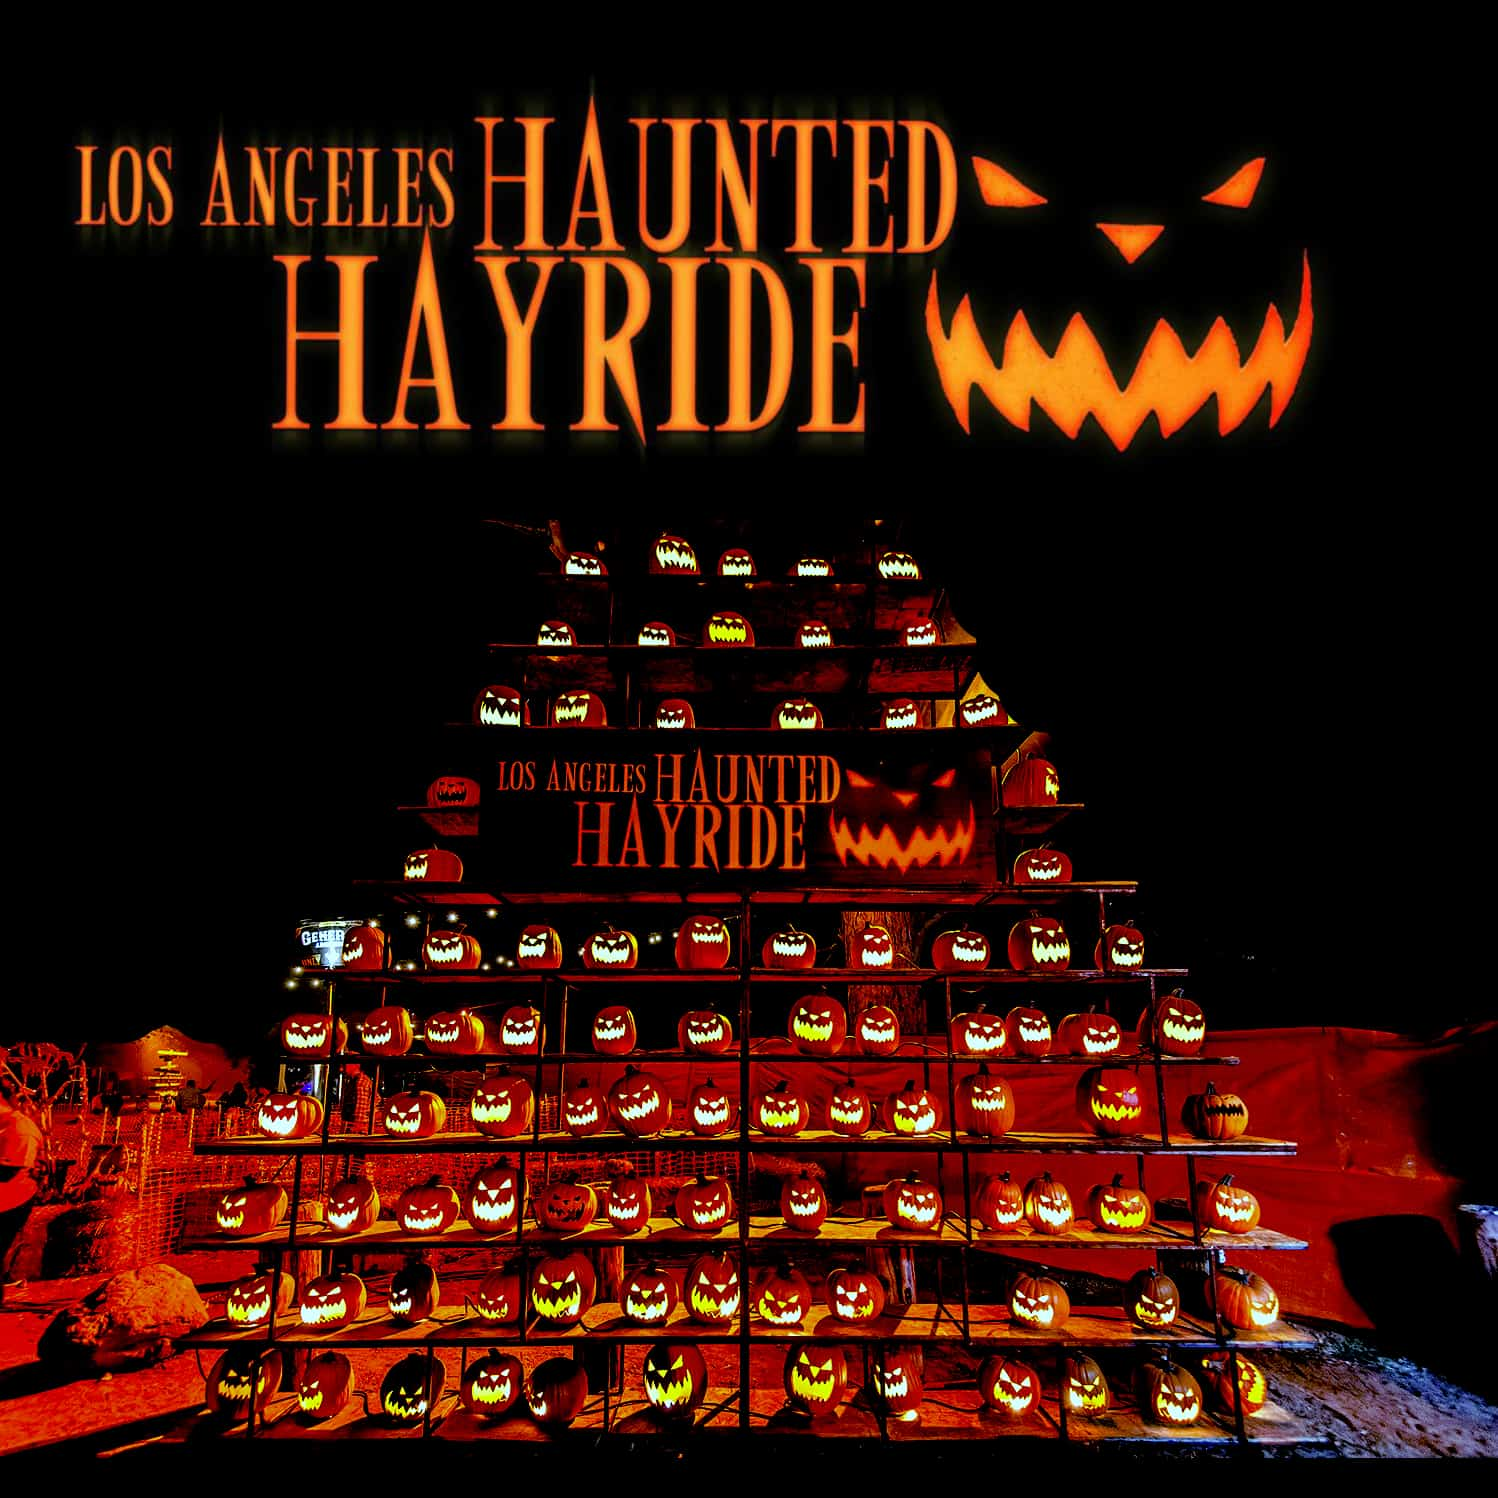 la haunted hayride - haunted attraction - haunting